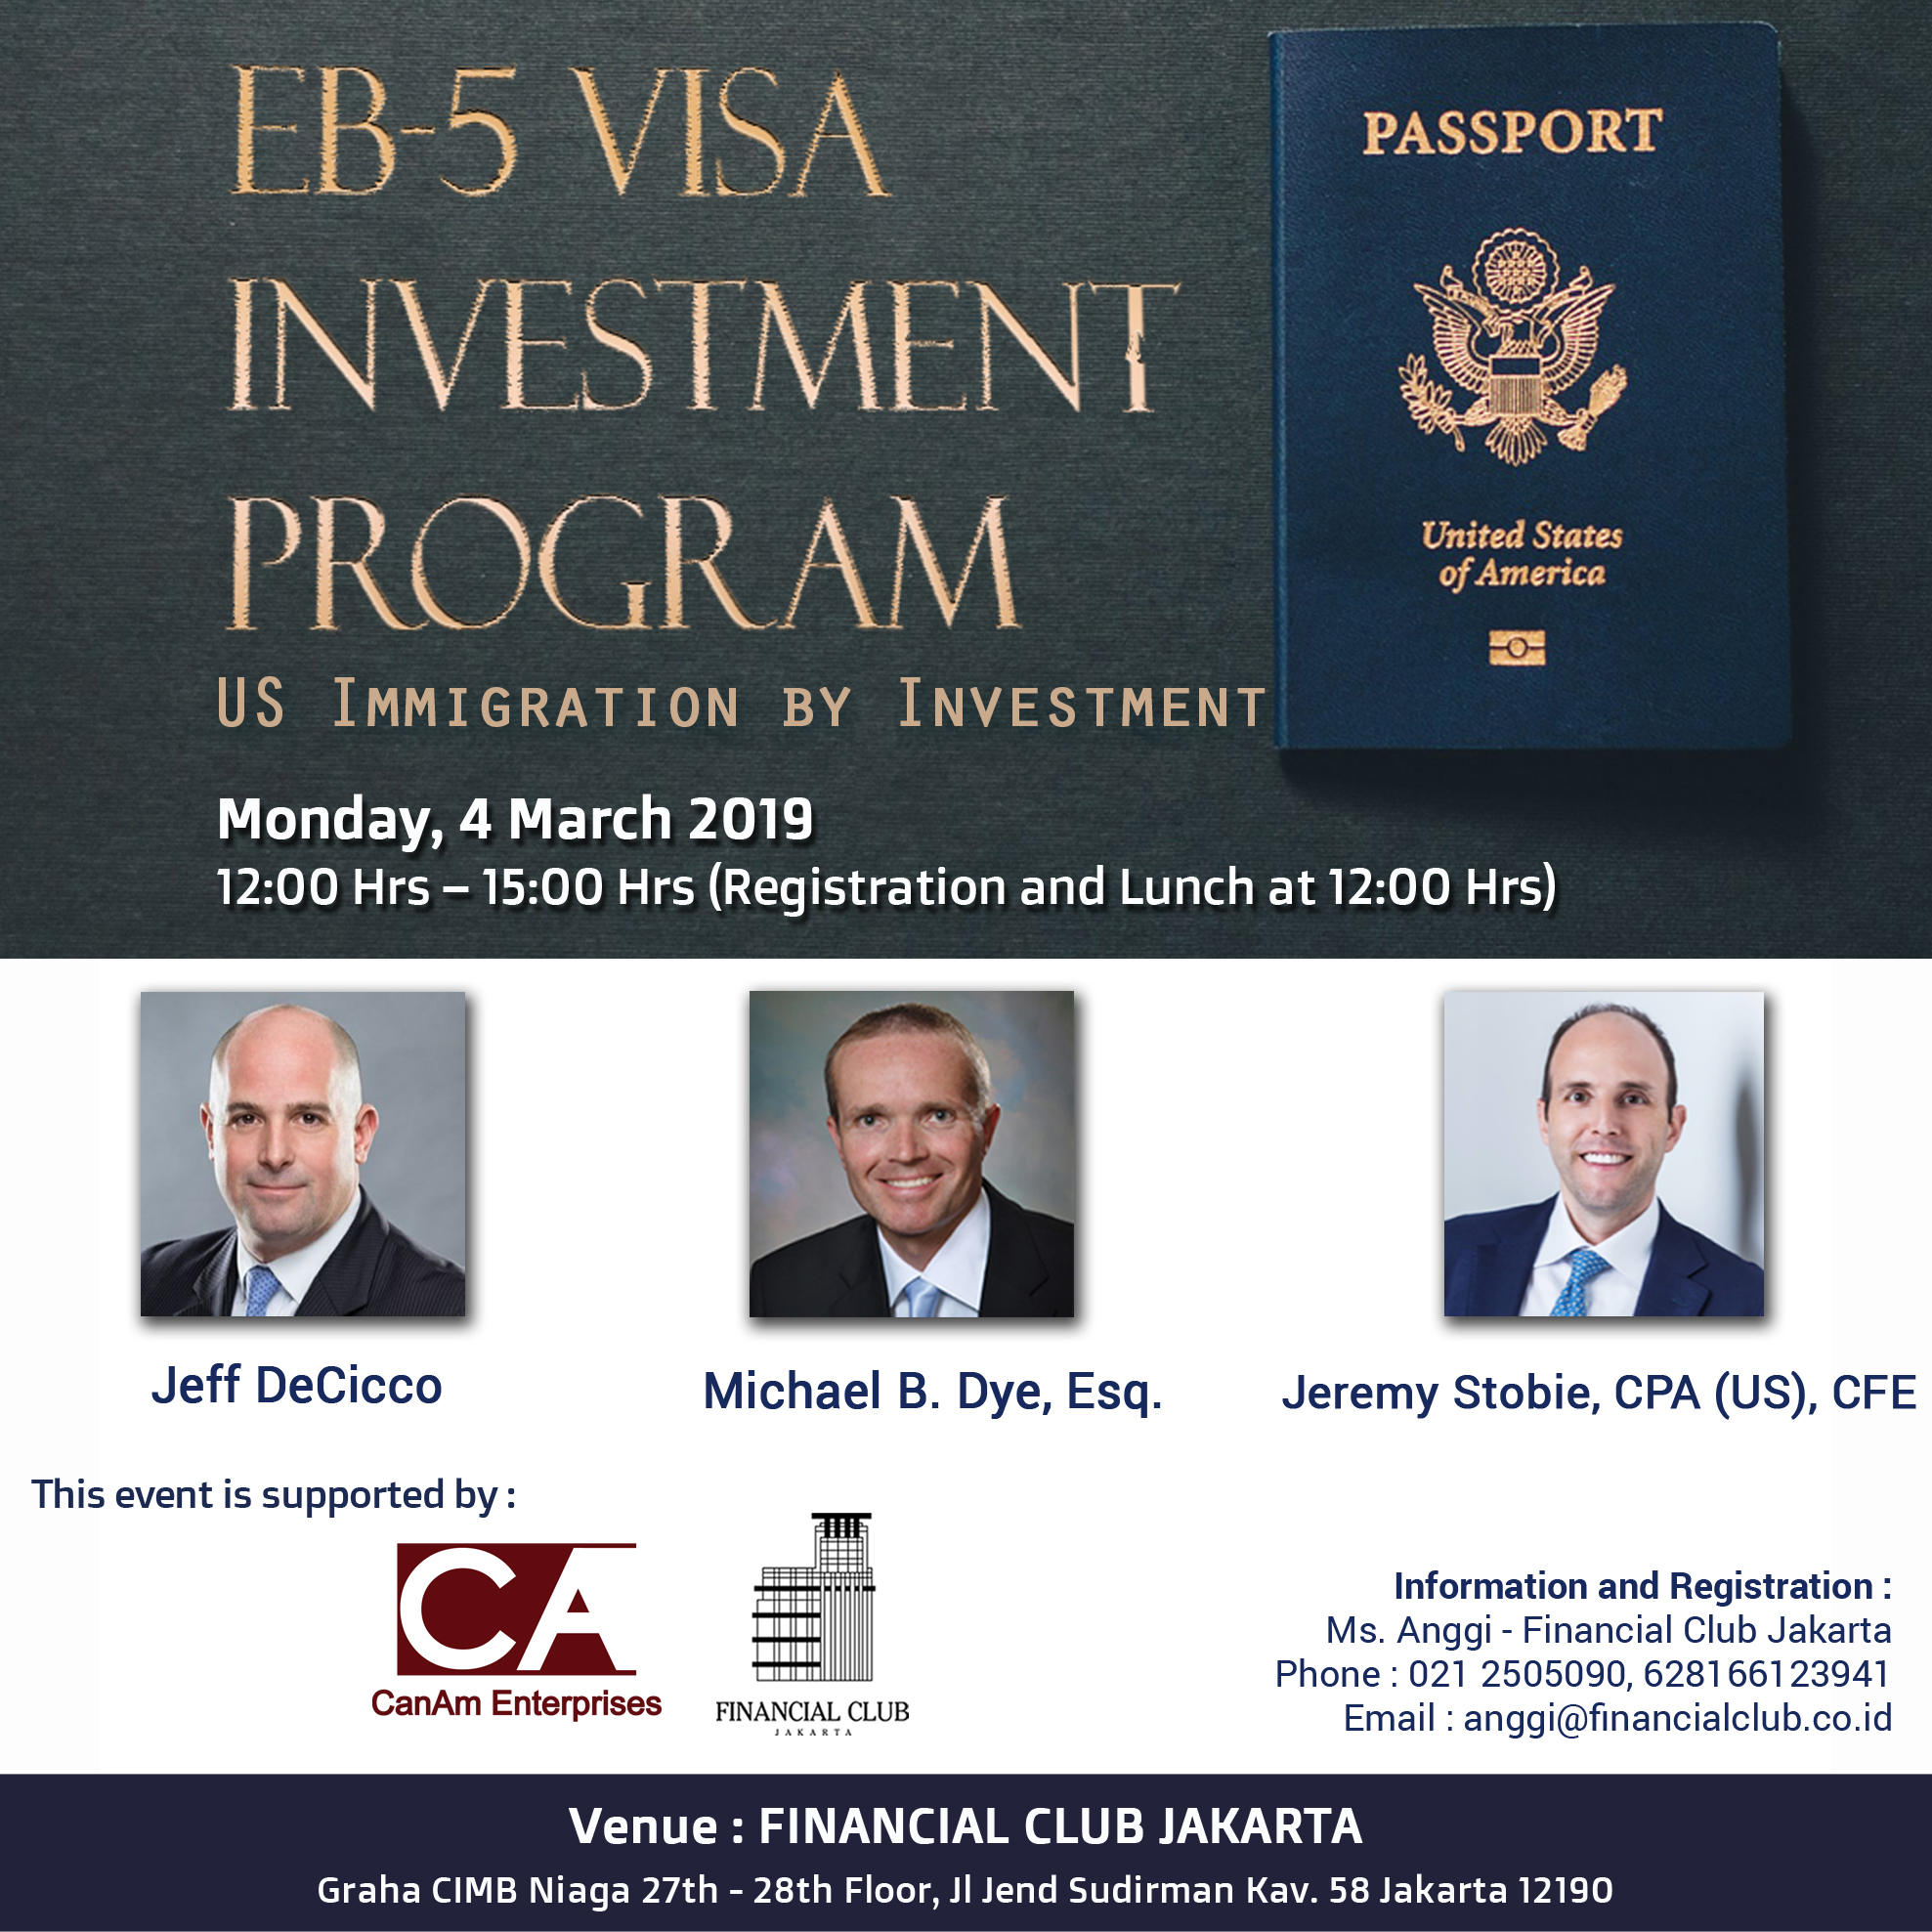 EB-5 Visa Investment Program,